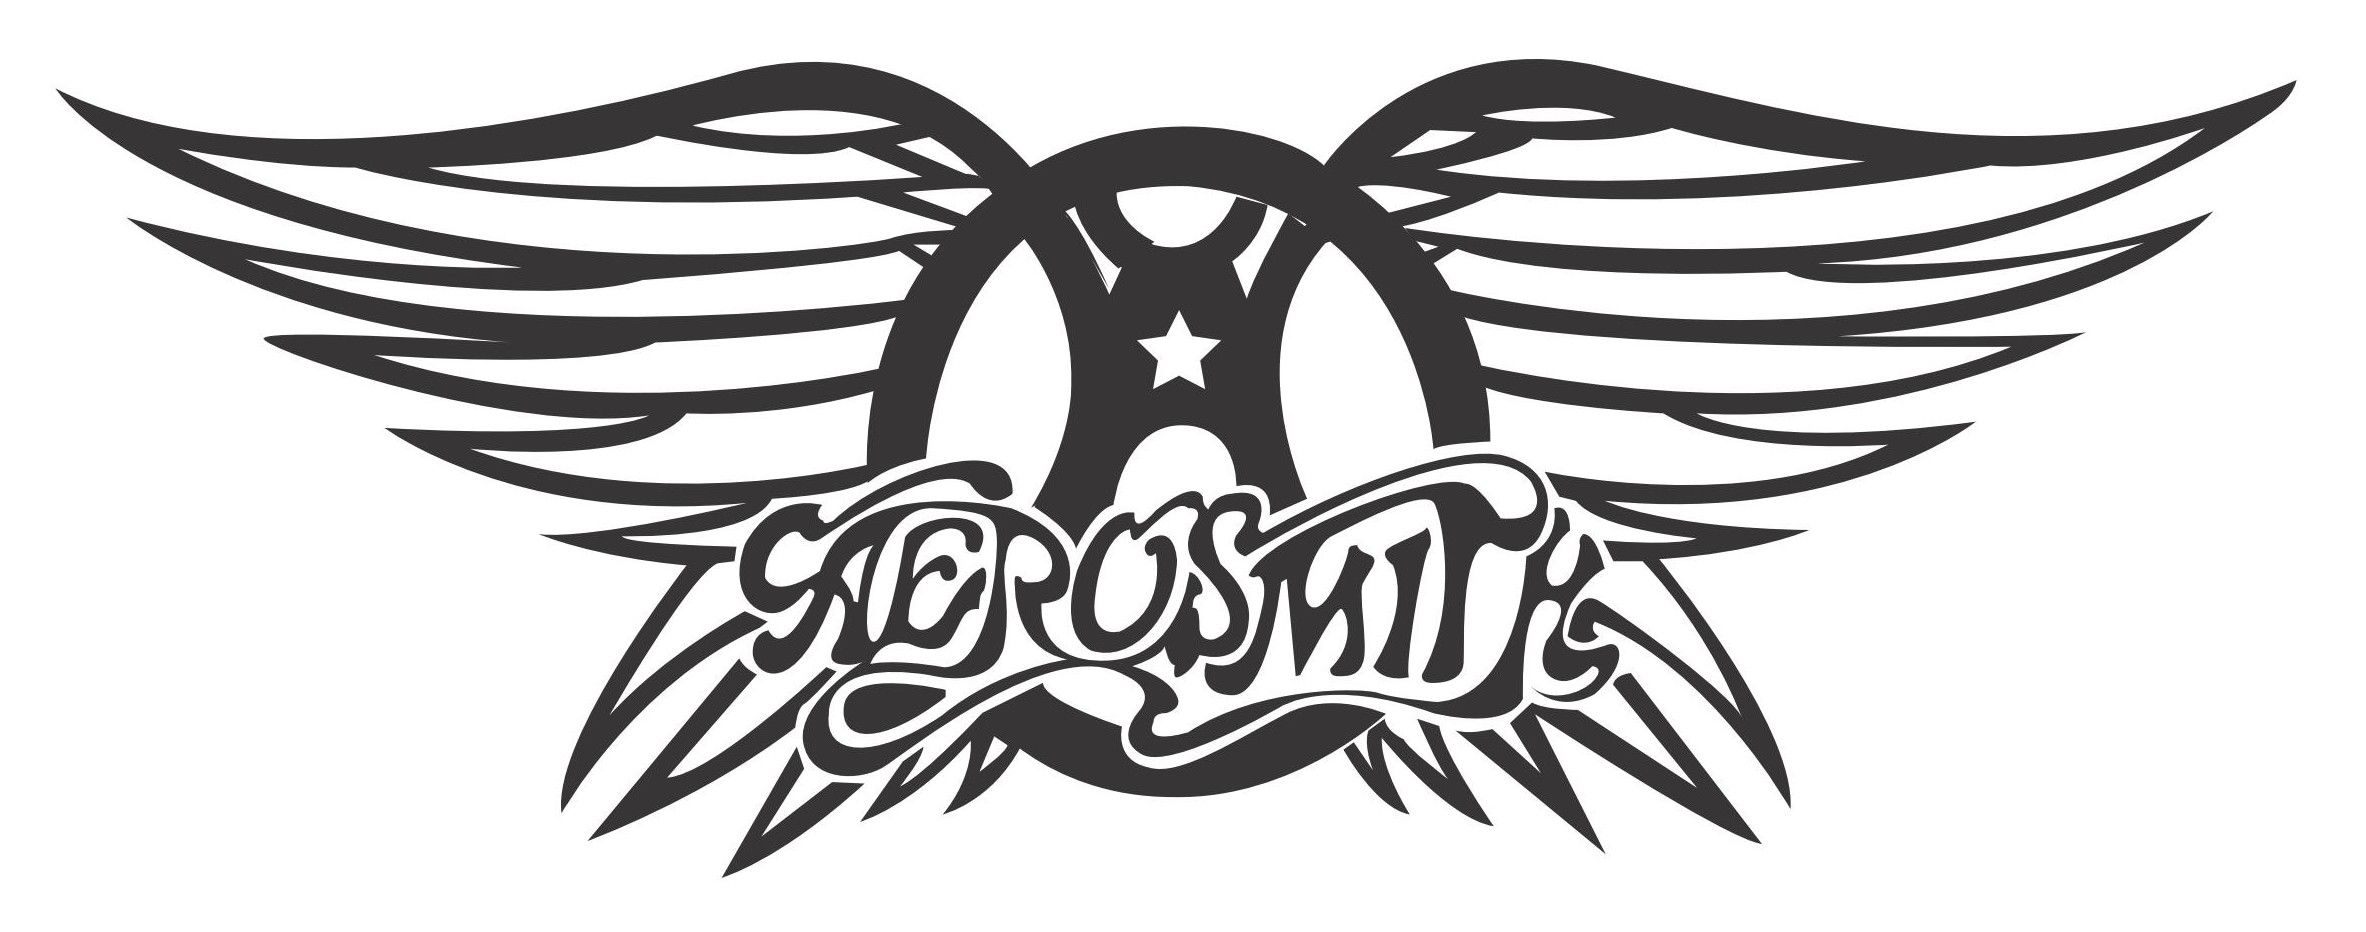 Aerosmith-logo | Rock Music Photo | Pinterest | Aerosmith ...